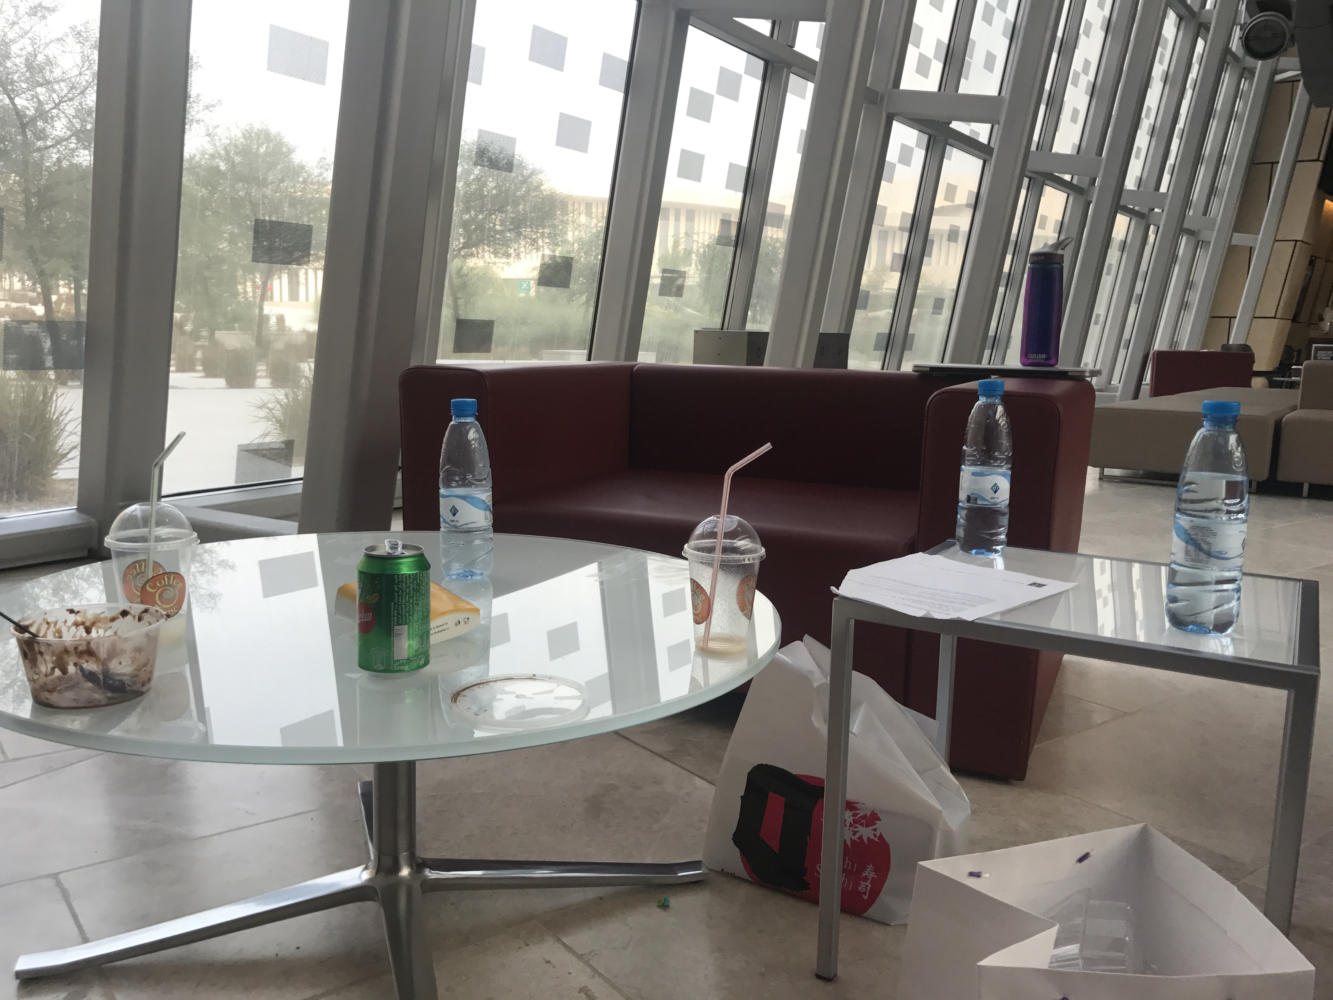 Undisposed garbage in the NU-Q building. Photo by Lolwa Al-Thani.